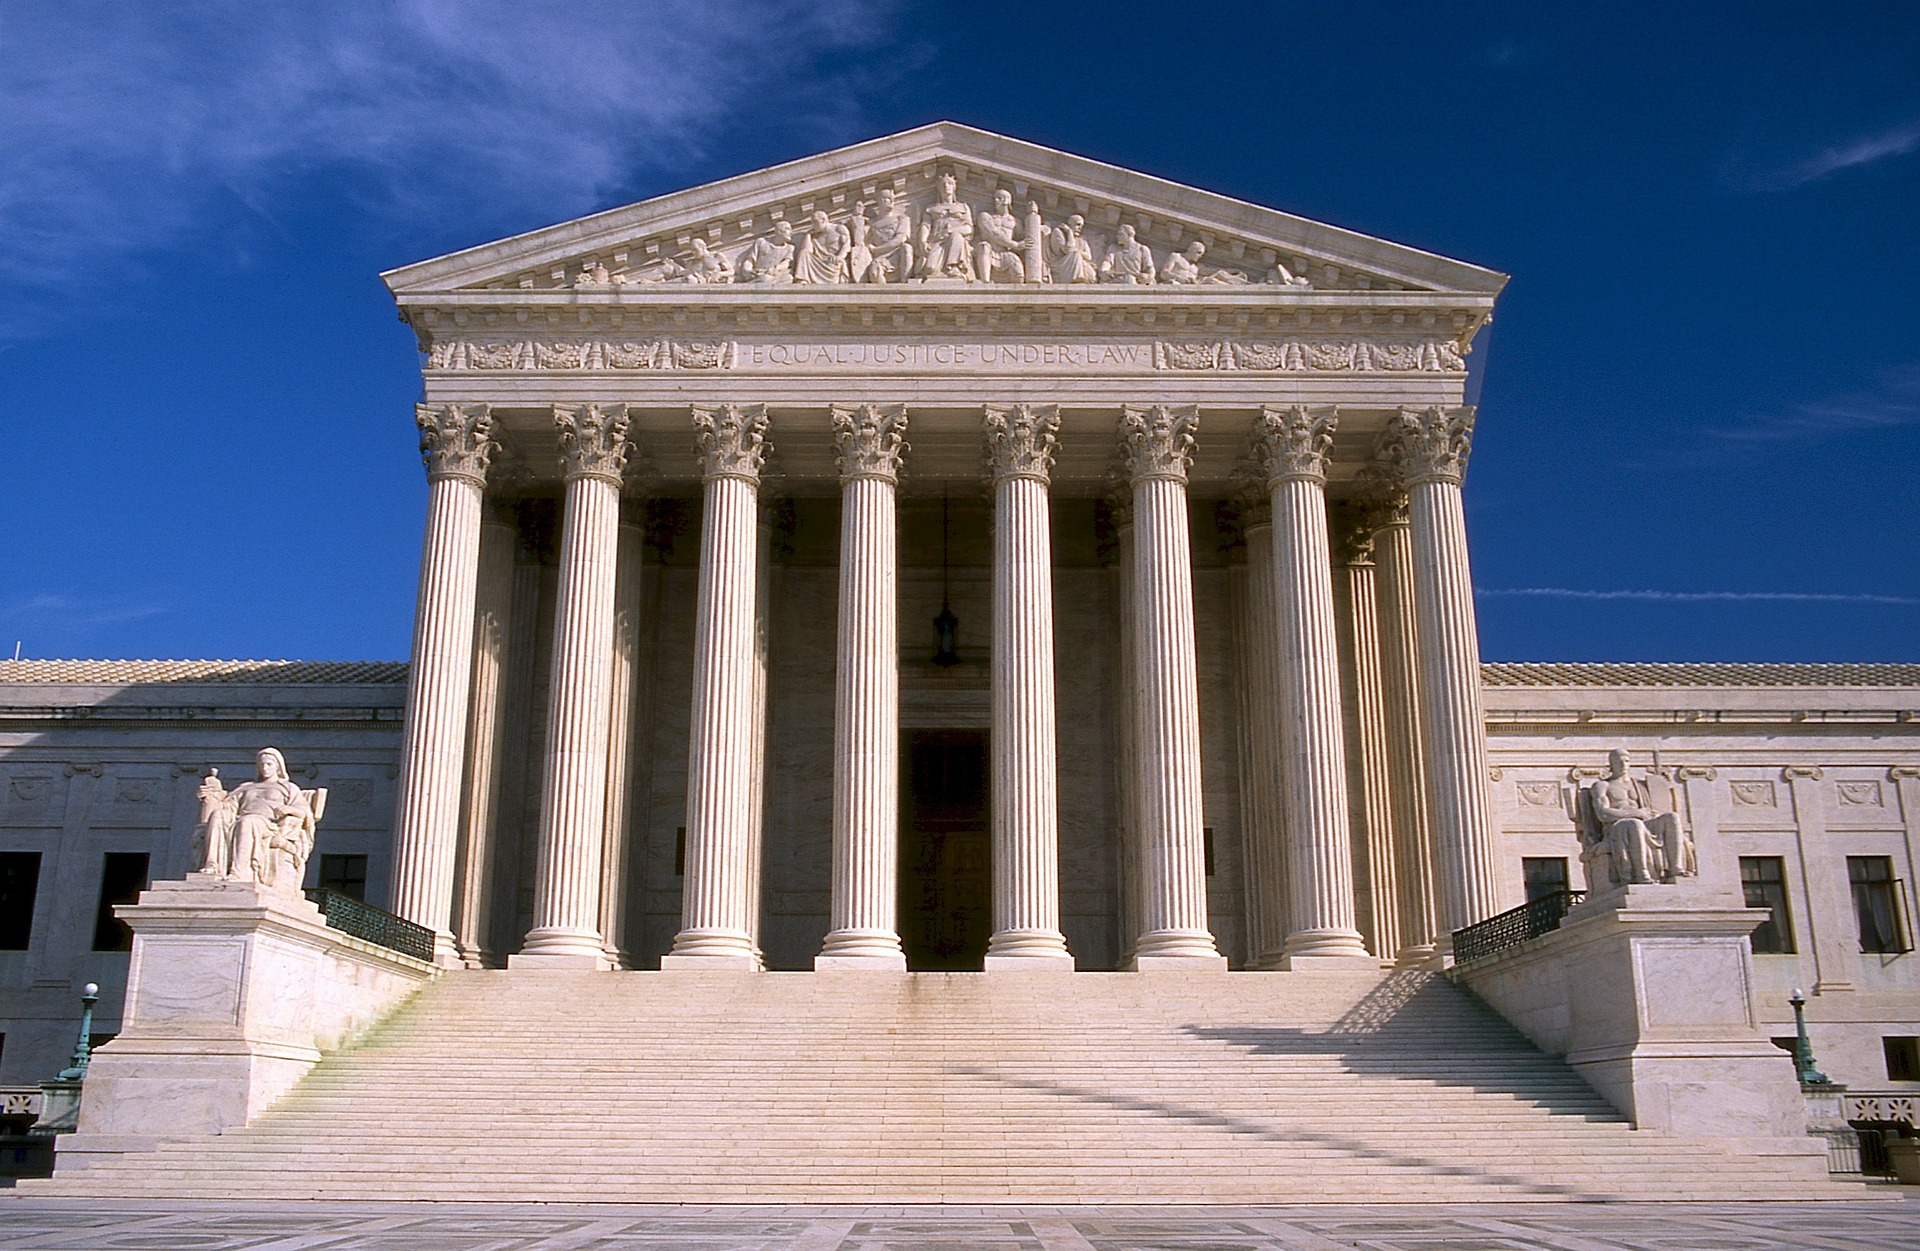 A view of the pillared front of a Supreme Court building.